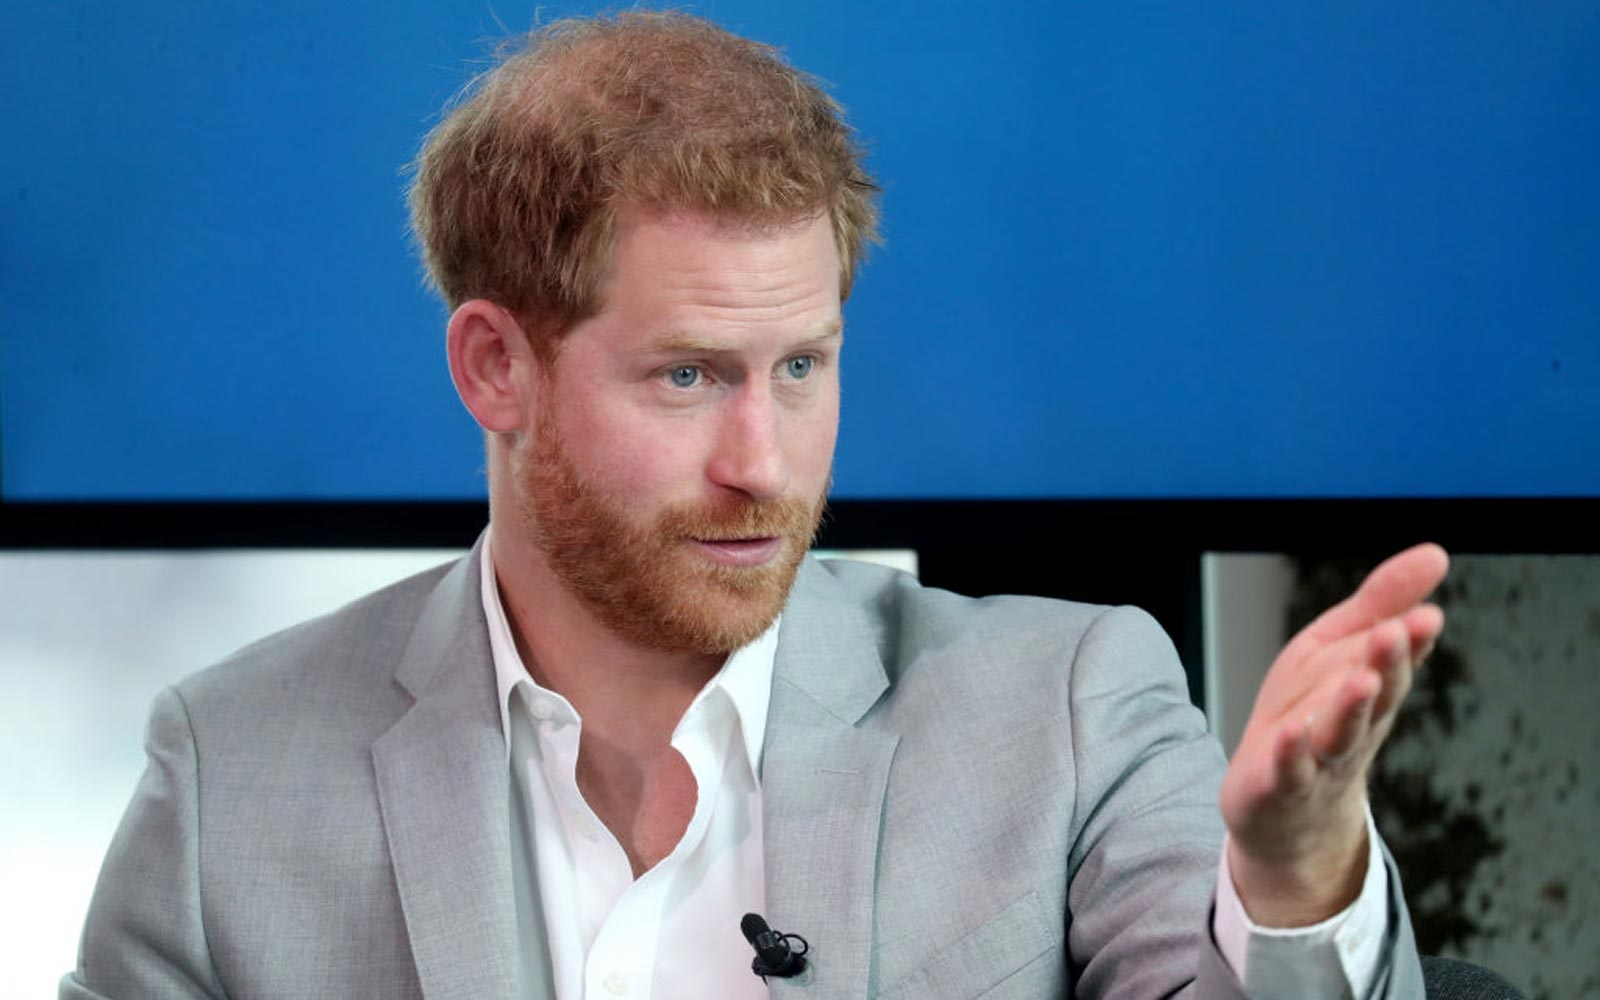 Prince Harry launches sustainable travel organization weeks after private plane backlash